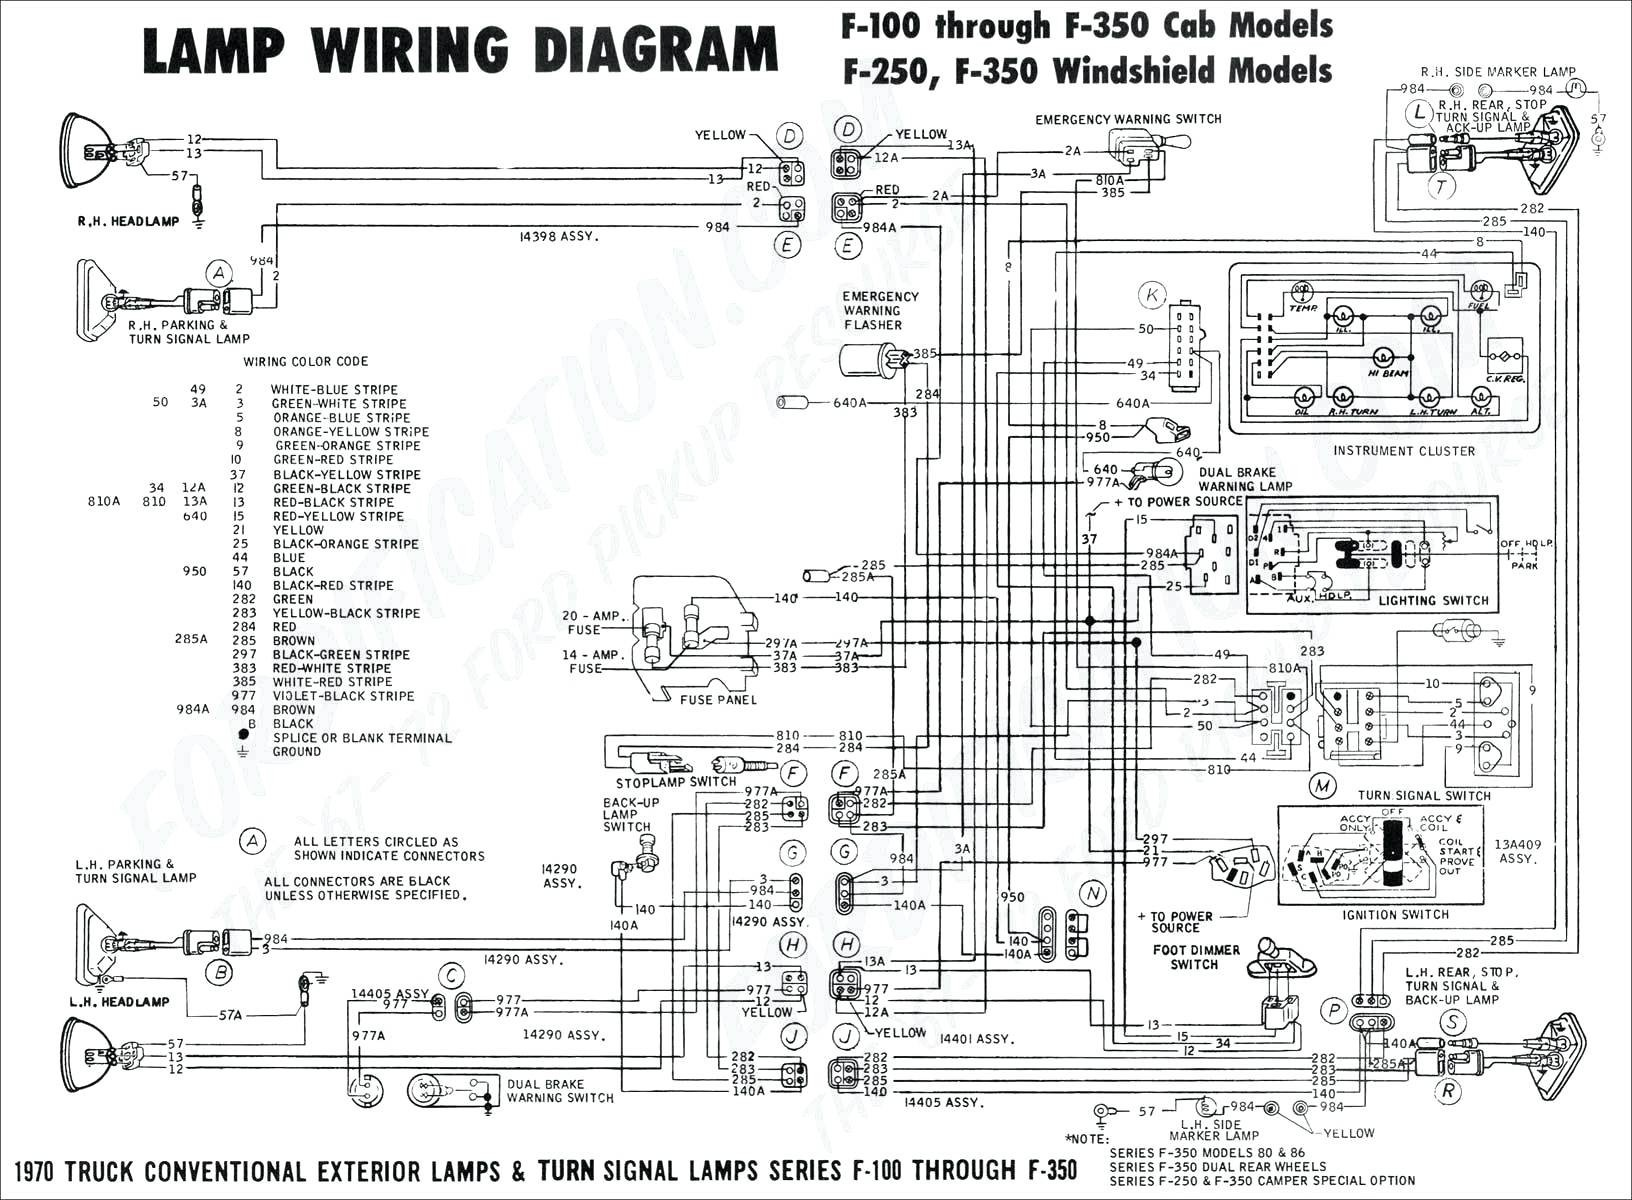 Daewoo Wiring Diagram - 3 Way Rotary Switch Wiring Diagram for Wiring  Diagram SchematicsWiring Diagram Schematics